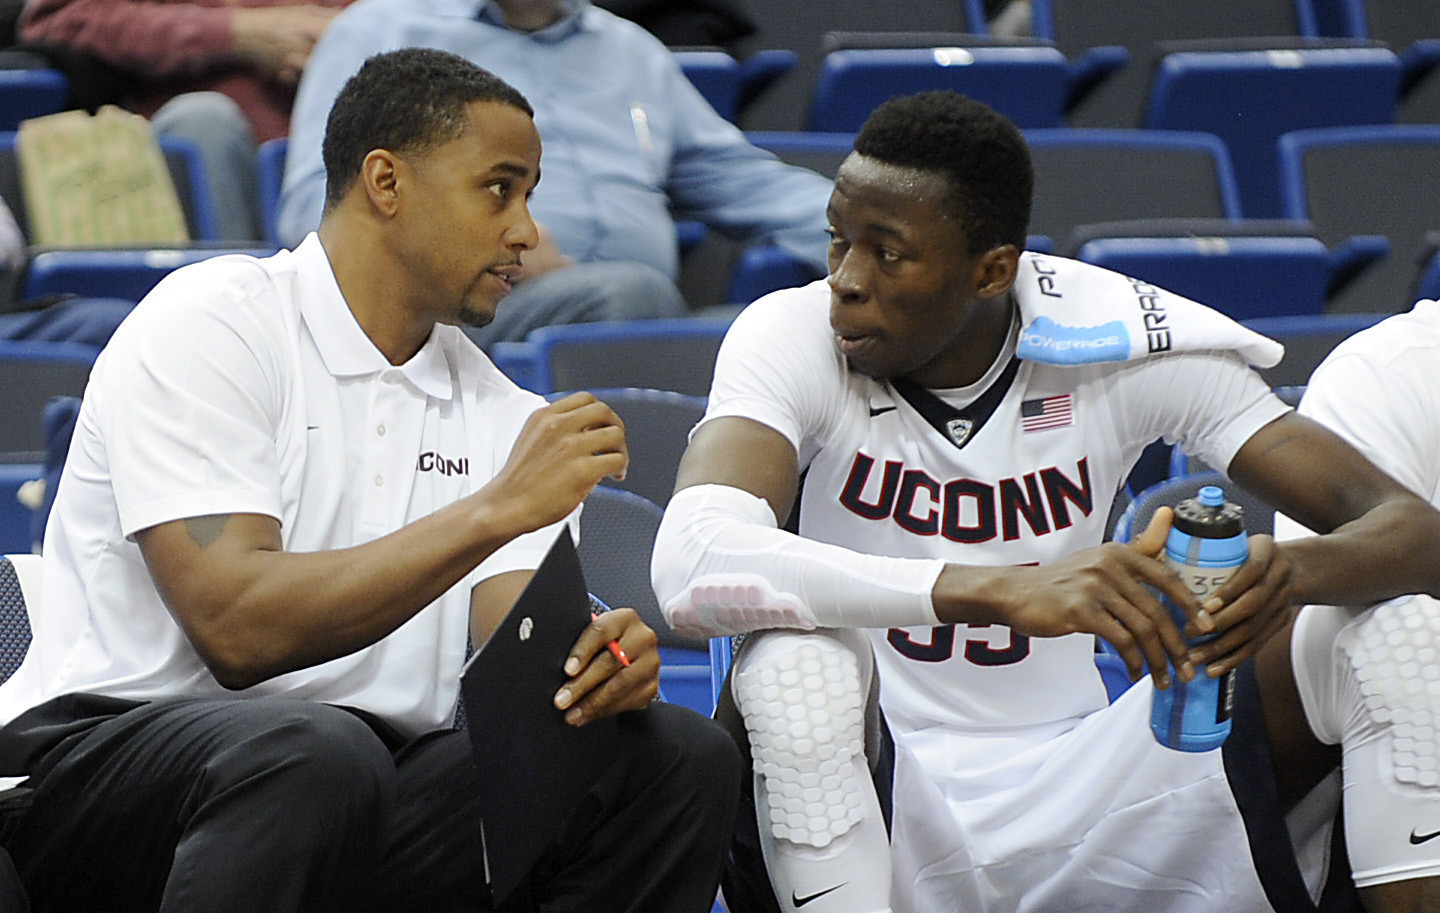 Kevin Freeman has an important role with UConn men's ...